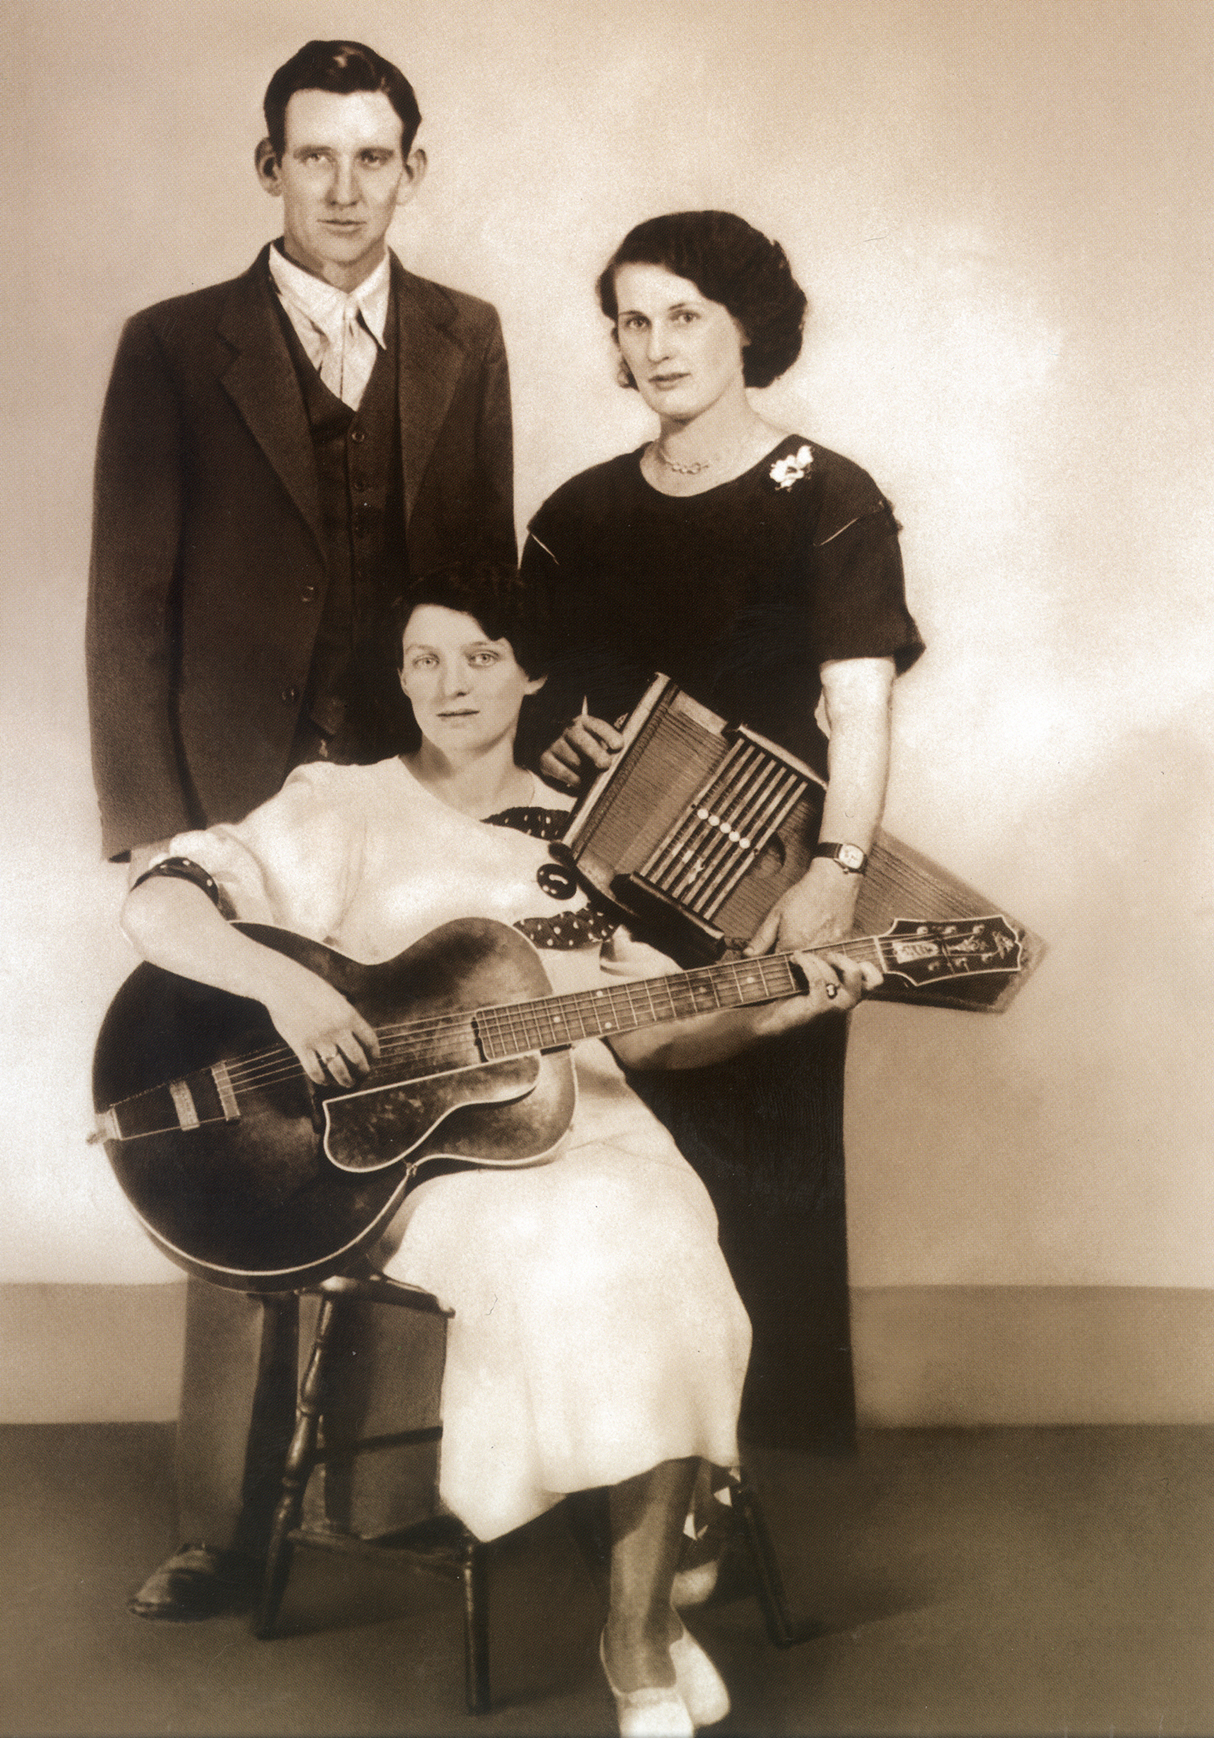 The Original Carter Family, circa 1930. from left: A.P., Maybelle, and Sara Carter. [Courtesy of Carter Family Museum, Rita Forrester]